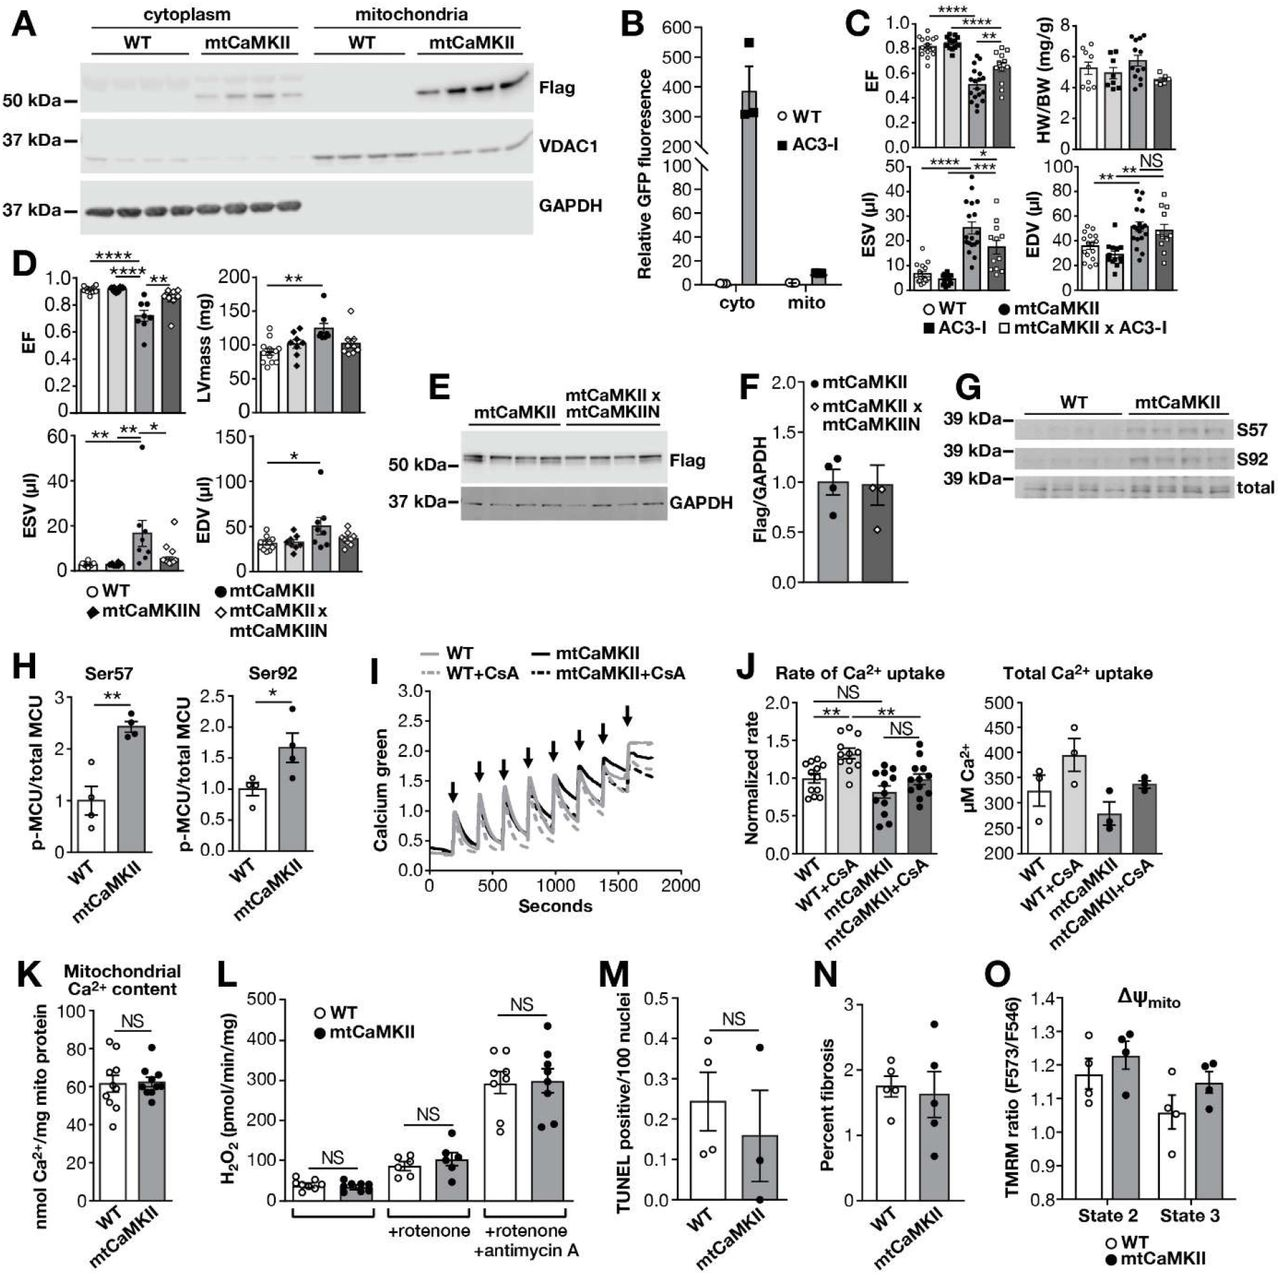 Dilated cardiomyopathy in mtCaMKII mice is independent of extramitochondrial CaMKII, MCU phosphorylation, mitochondrial Ca 2+ , ROS, and ΔΨ mito (A) Western blot for flag-CaMKII, VDAC1 and GAPDH in cytoplasm and mitochondria fractions from WT (n=4) and mtCaMKII hearts (n=4) (B) Quantification AC3-I-GFP fusion protein expression in cytoplasm and mitochondria from WT and AC3-I mouse hearts (n=3). (C) Summary data for echocardiographic measurements from WT (n=16), AC3-I (n=13), mtCaMKII (n=18), and mtCaMKII x AC3-I (n=12) mice. (D) Summarized echocardiographic measurement data from WT (n=12), mtCaMKIIN (n=8), mtCaMKII (n=10), and mtCaMKII x mtCaMKIIN (n=10) mice. (E) Western blot and (F) summary data for flag-CaMKII normalized to GAPDH in mtCaMKII (n=4) and mtCaMKII x mtCaMKIIN (n=4) hearts. (G) Western blot and (H) summary data for phosphorylated MCU normalized to total MCU for WT (n=4) and mtCaMKII (n=4) mitochondria. (I) Mitochondrial Ca 2+ uptake assay with cell membrane permeabilized adult ventricular myocytes from WT (n=3) and mtCaMKII (n=3) mice; arrows indicate addition of Ca 2+ . (J) Rate of Ca 2+ uptake calculated from the first 3 peaks of Ca 2+ addition and total Ca 2+ uptake before mPTP opening. (K) Total mitochondrial Ca 2+ content normalized to total protein in isolated mitochondria from WT (n=10) and mtCaMKII (n=10) hearts. (L) H2O2 production measured by Amplex Red in isolated mitochondria from WT (n=8) and mtCaMKII (n=8) hearts. (M) Quantification of TUNEL positive nuclei from heart sections of WT (5 sections from n=4 hearts) and mtCaMKII (5 sections from n=3 hearts) mice. (N) Quantification of fibrosis by Masson's Trichrome staining from WT (6 sections from n=3 hearts) and mtCaMKII (6 sections from n=3 hearts) heart sections. (O) Mitochondrial membrane potential (ΔΨ mito ) measured with TMRM under state 2 (substrate alone) and state 3 (substrate plus ADP) respiration in isolated mitochondria from WT (n=4) and mtCaMKII (n=4) hearts. (Data are represent